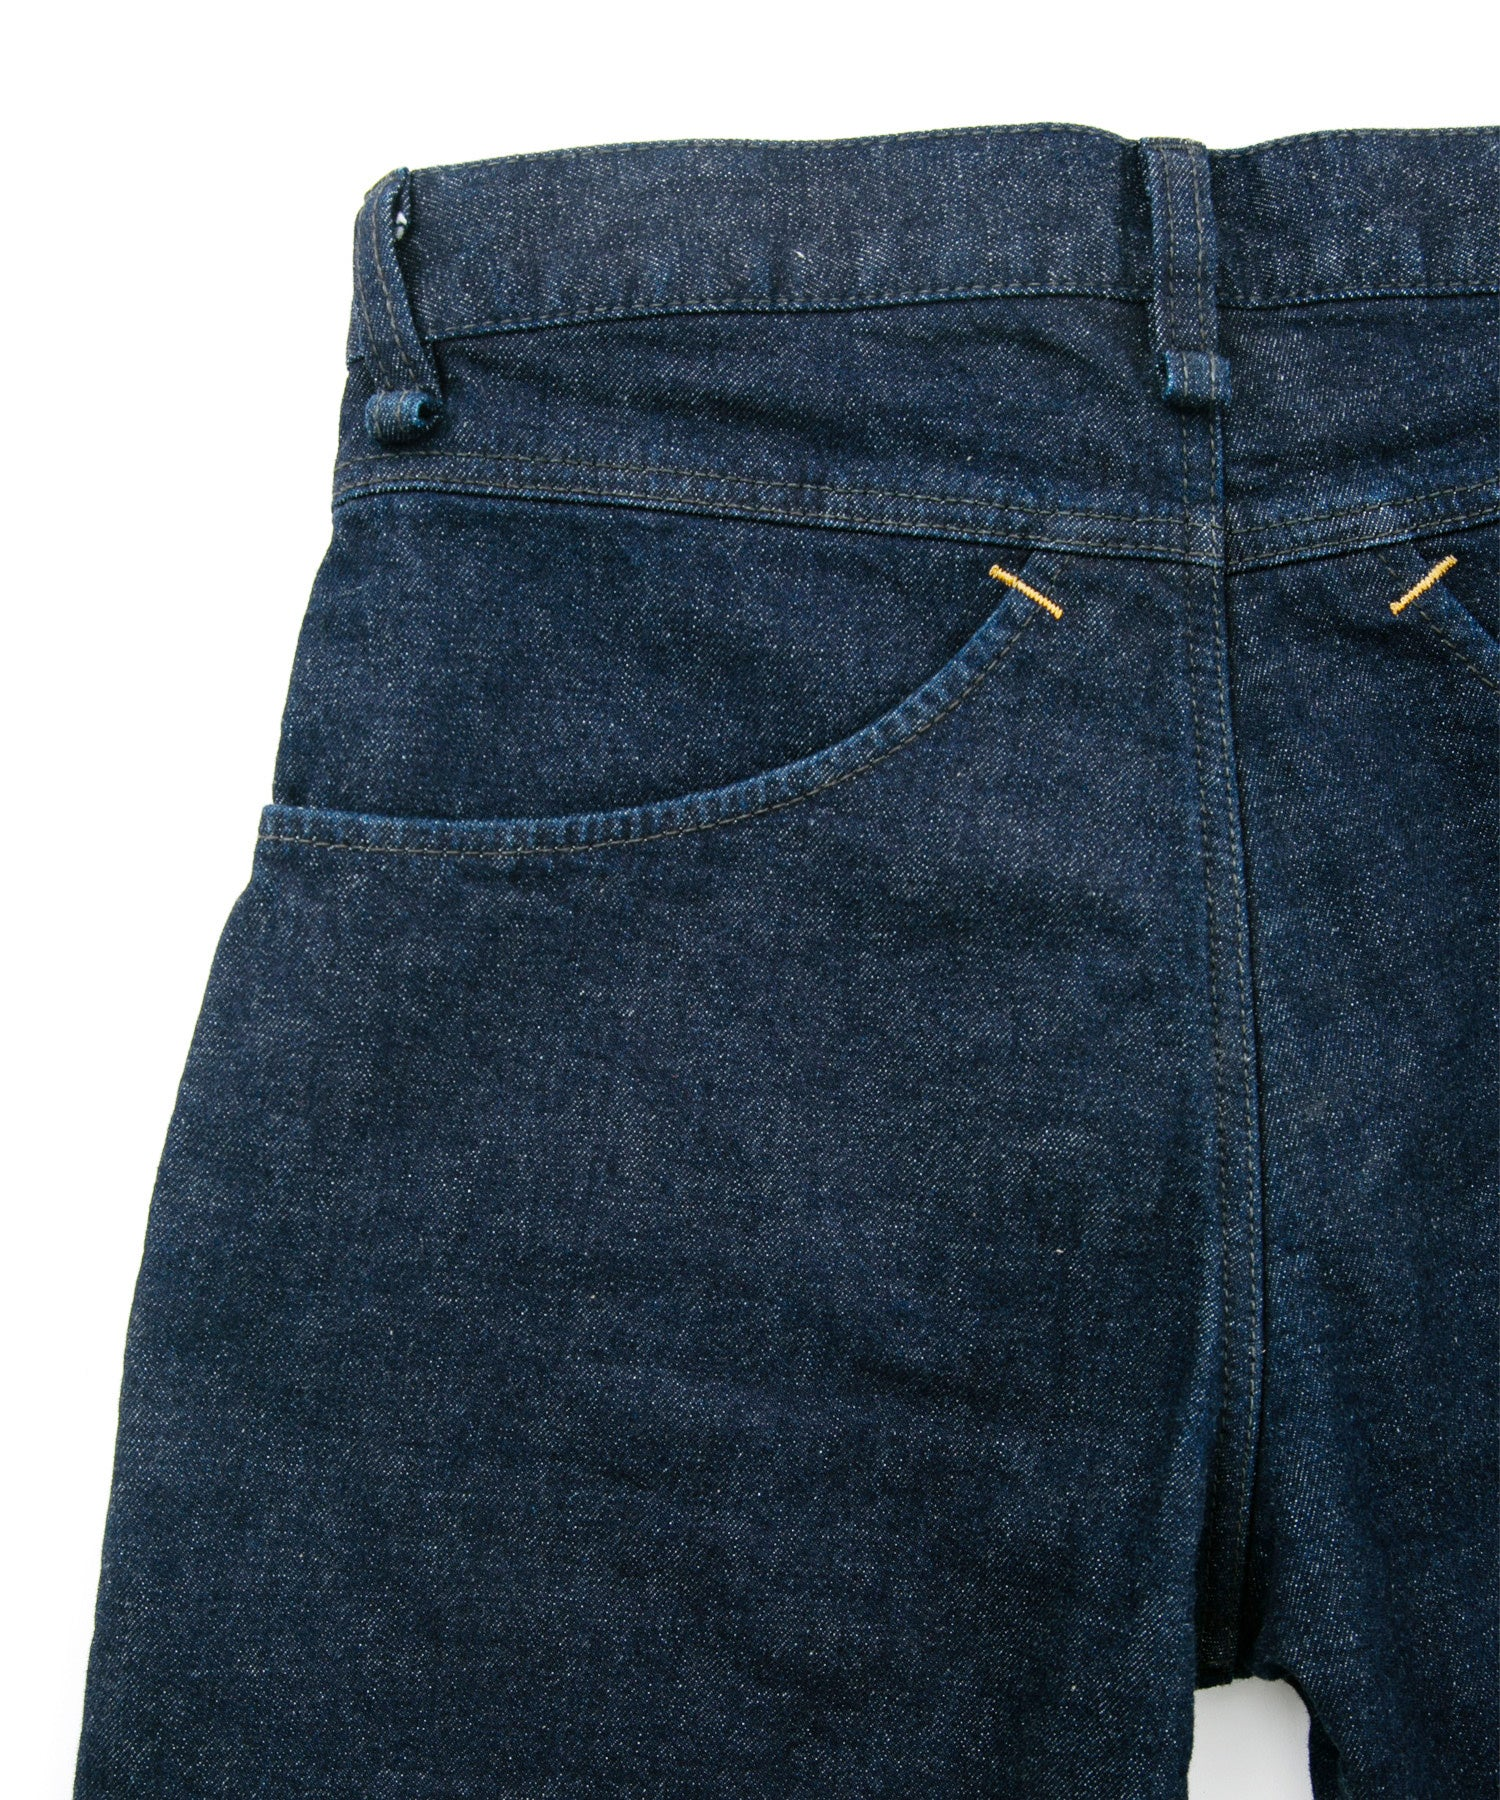 Load image into Gallery viewer, 12.5oz Organic Cotton Stretch Denim Cropped Jeans One Wash / INDIGO